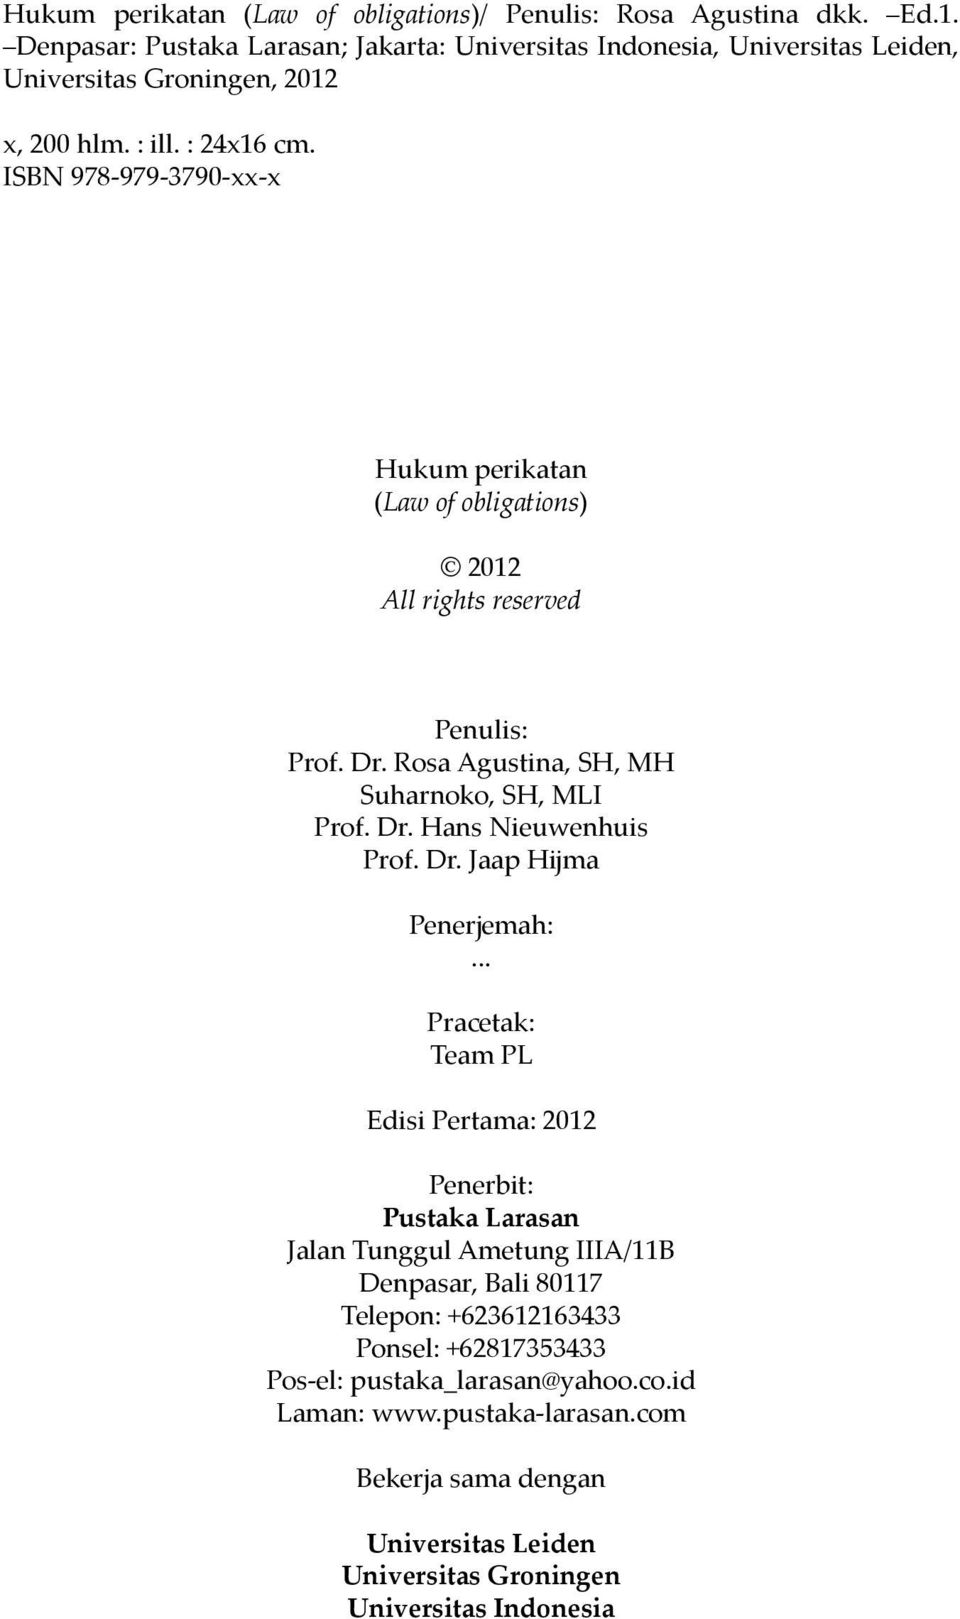 ISBN 978-979-3790-xx-x Hukum perikatan (Law of obligations) 2012 All rights reserved Penulis: Prof. Dr. Rosa Agustina, SH, MH Suharnoko, SH, MLI Prof. Dr. Hans Nieuwenhuis Prof. Dr. Jaap Hijma Penerjemah:.